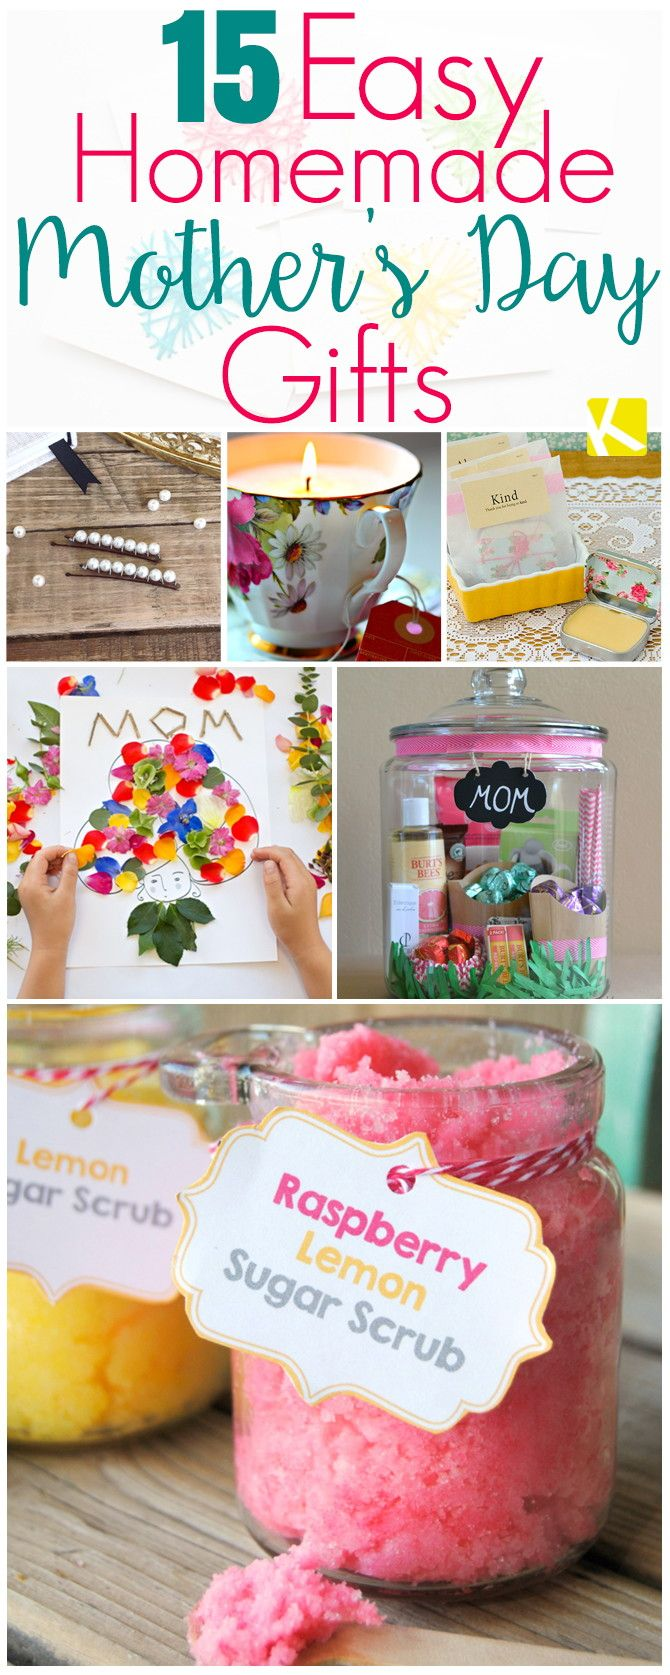 Diy Gifts For Mom From Kids The Image